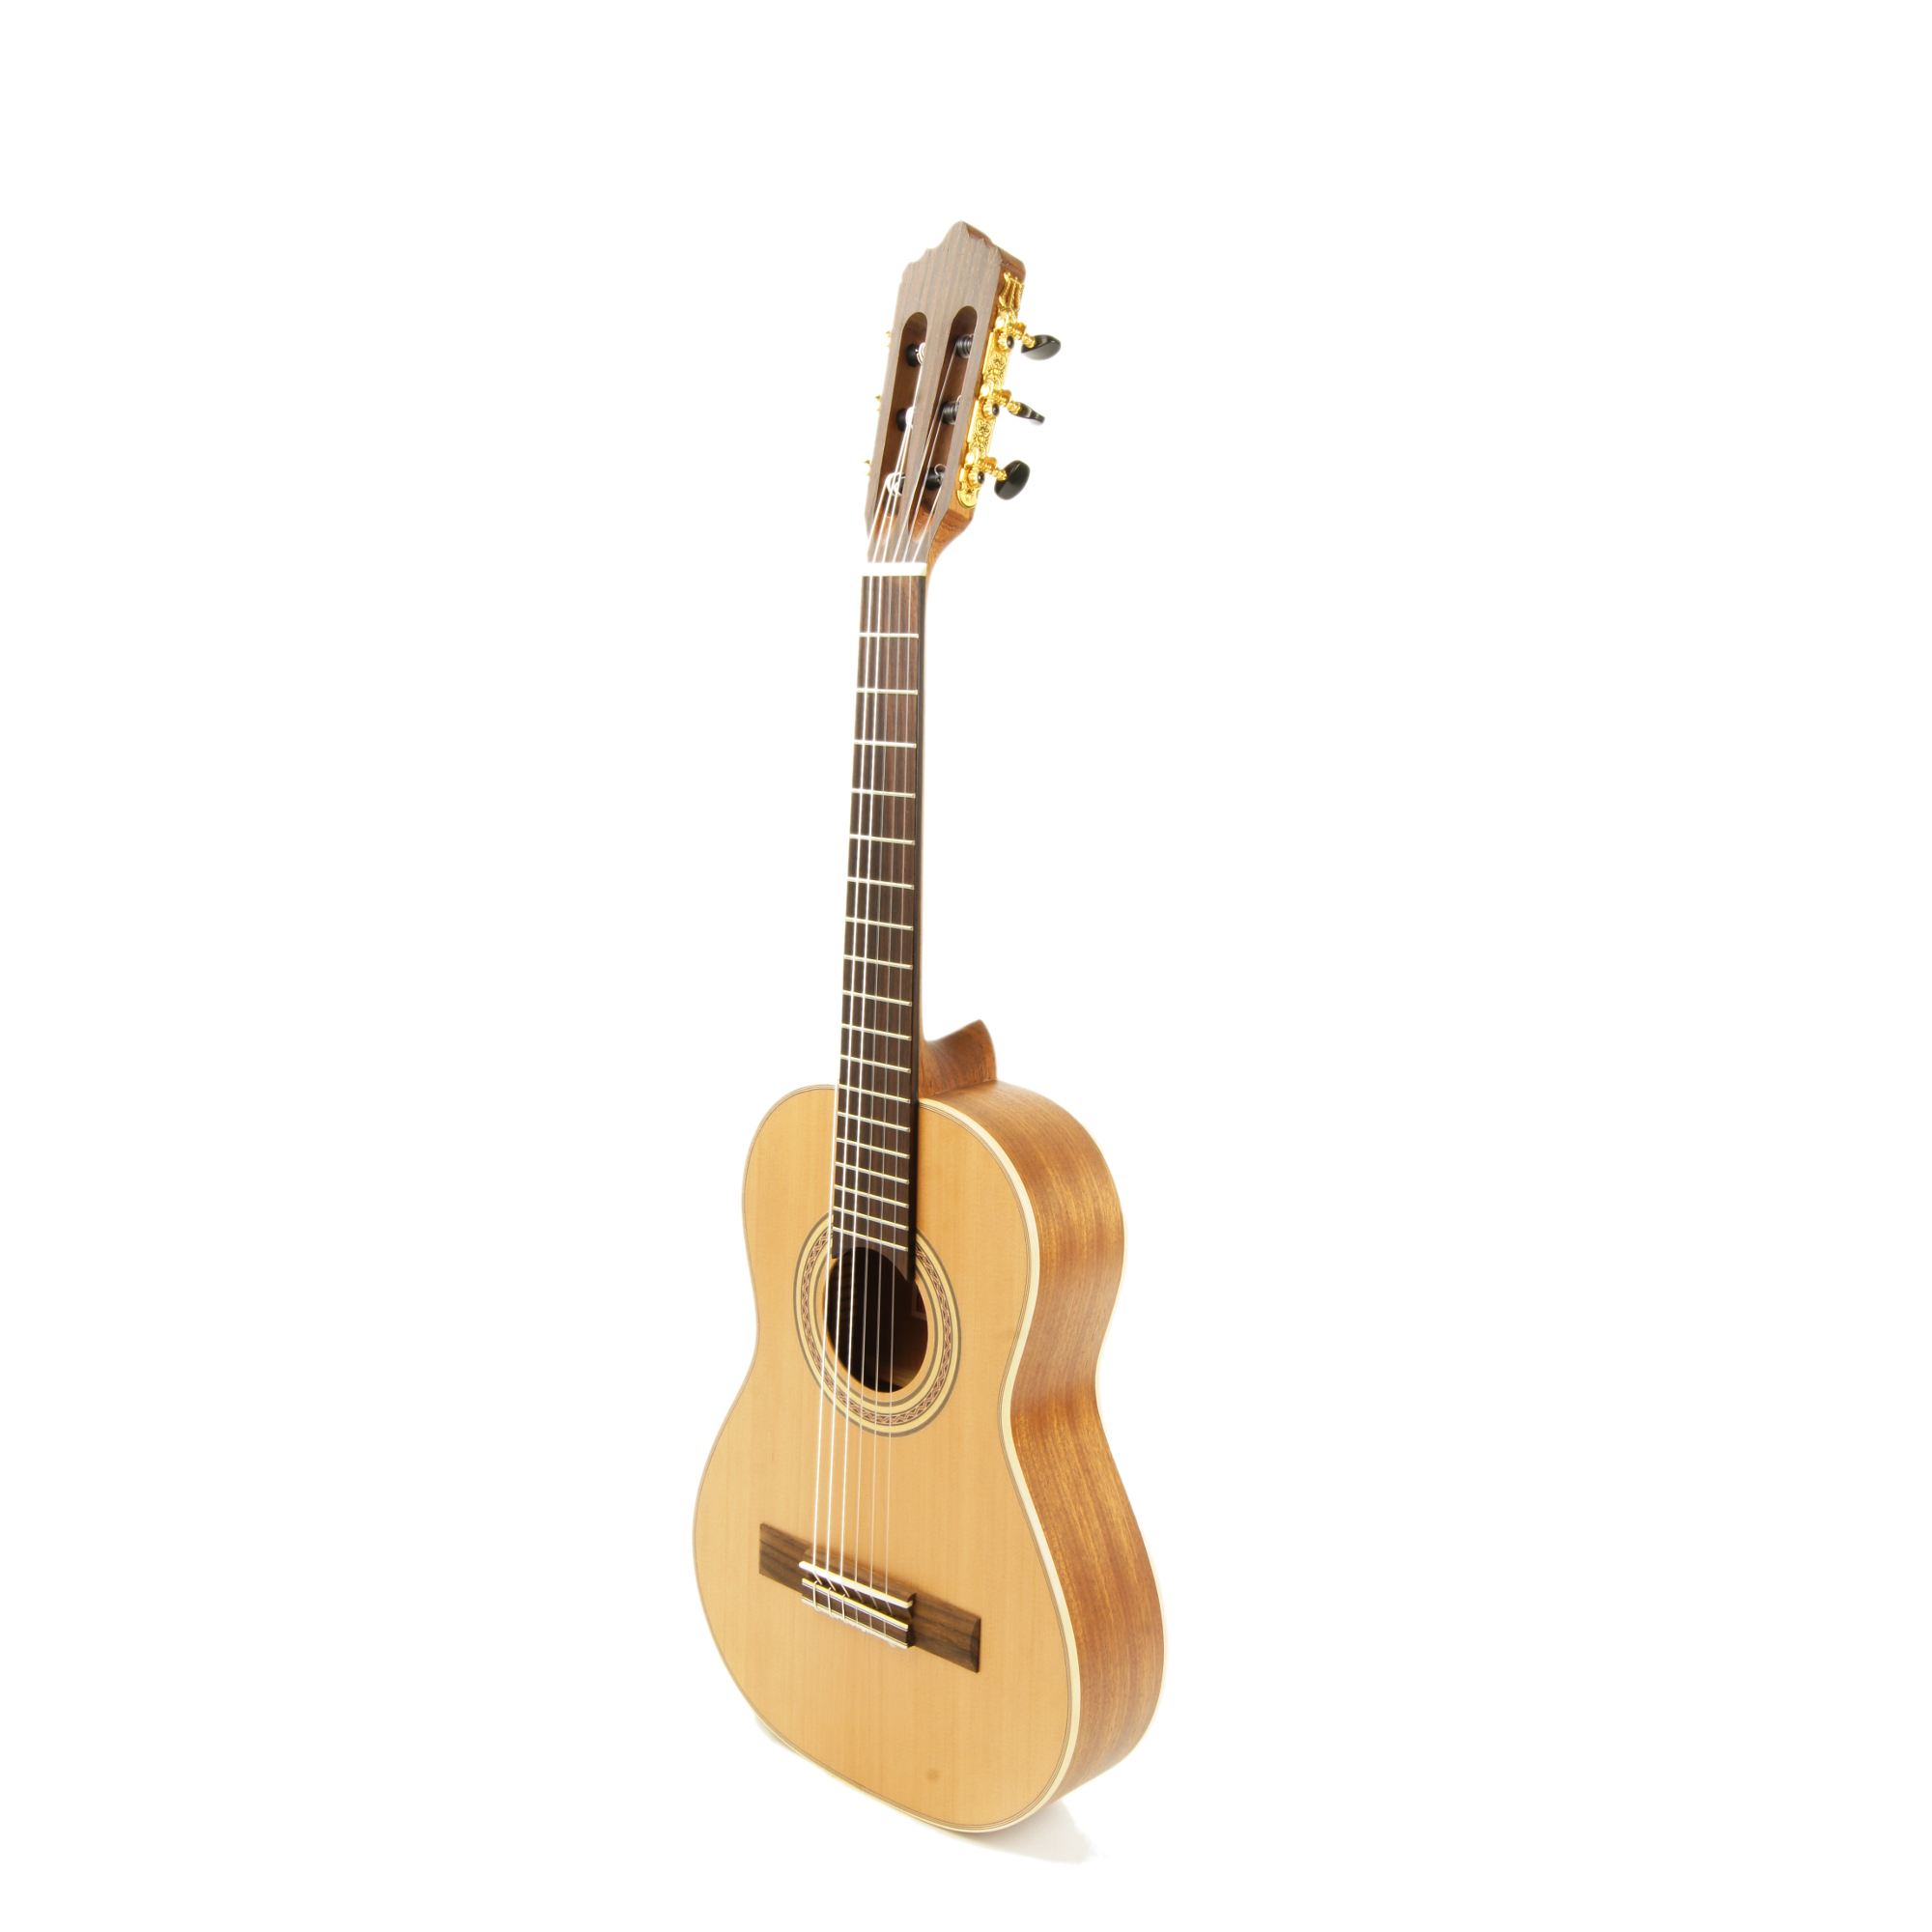 La Mancha Rubi CM 53 N - Small Neck